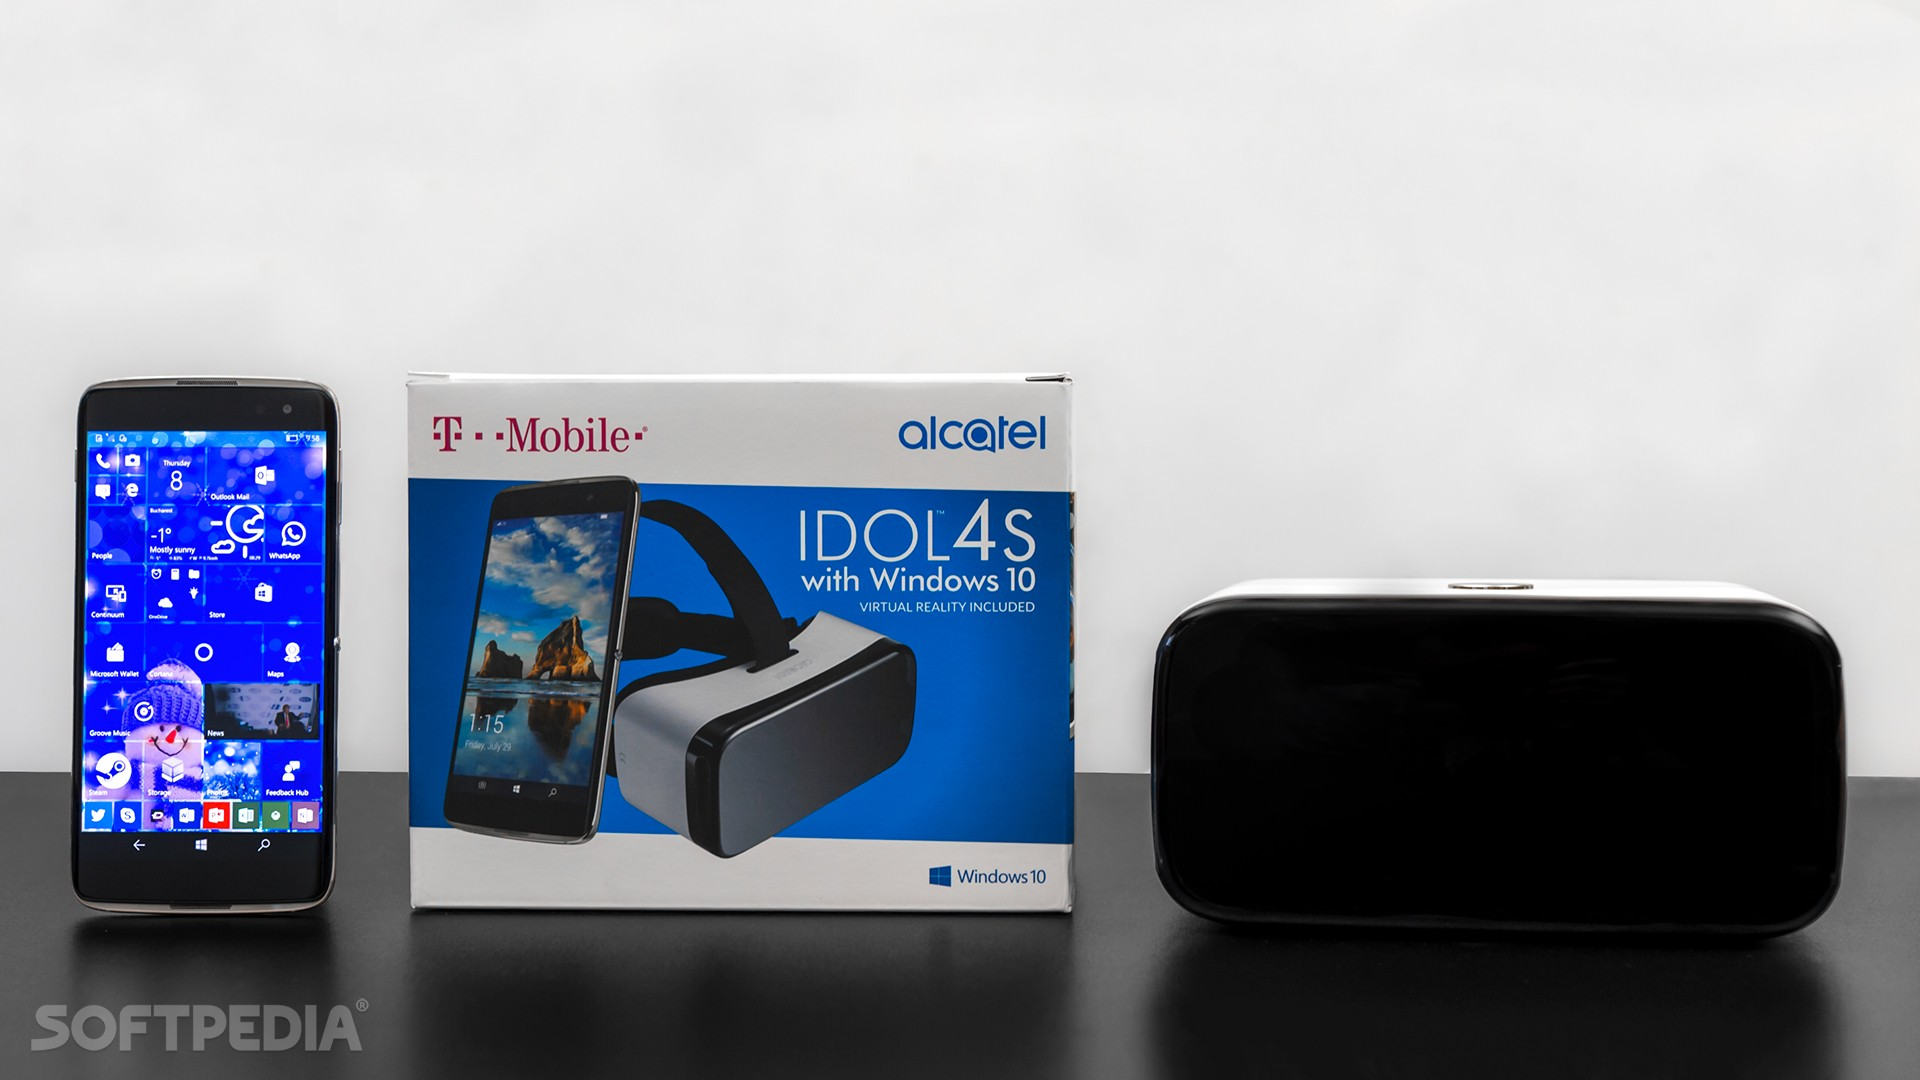 Alcatel IDOL 4S with Windows 10 Mobile Review